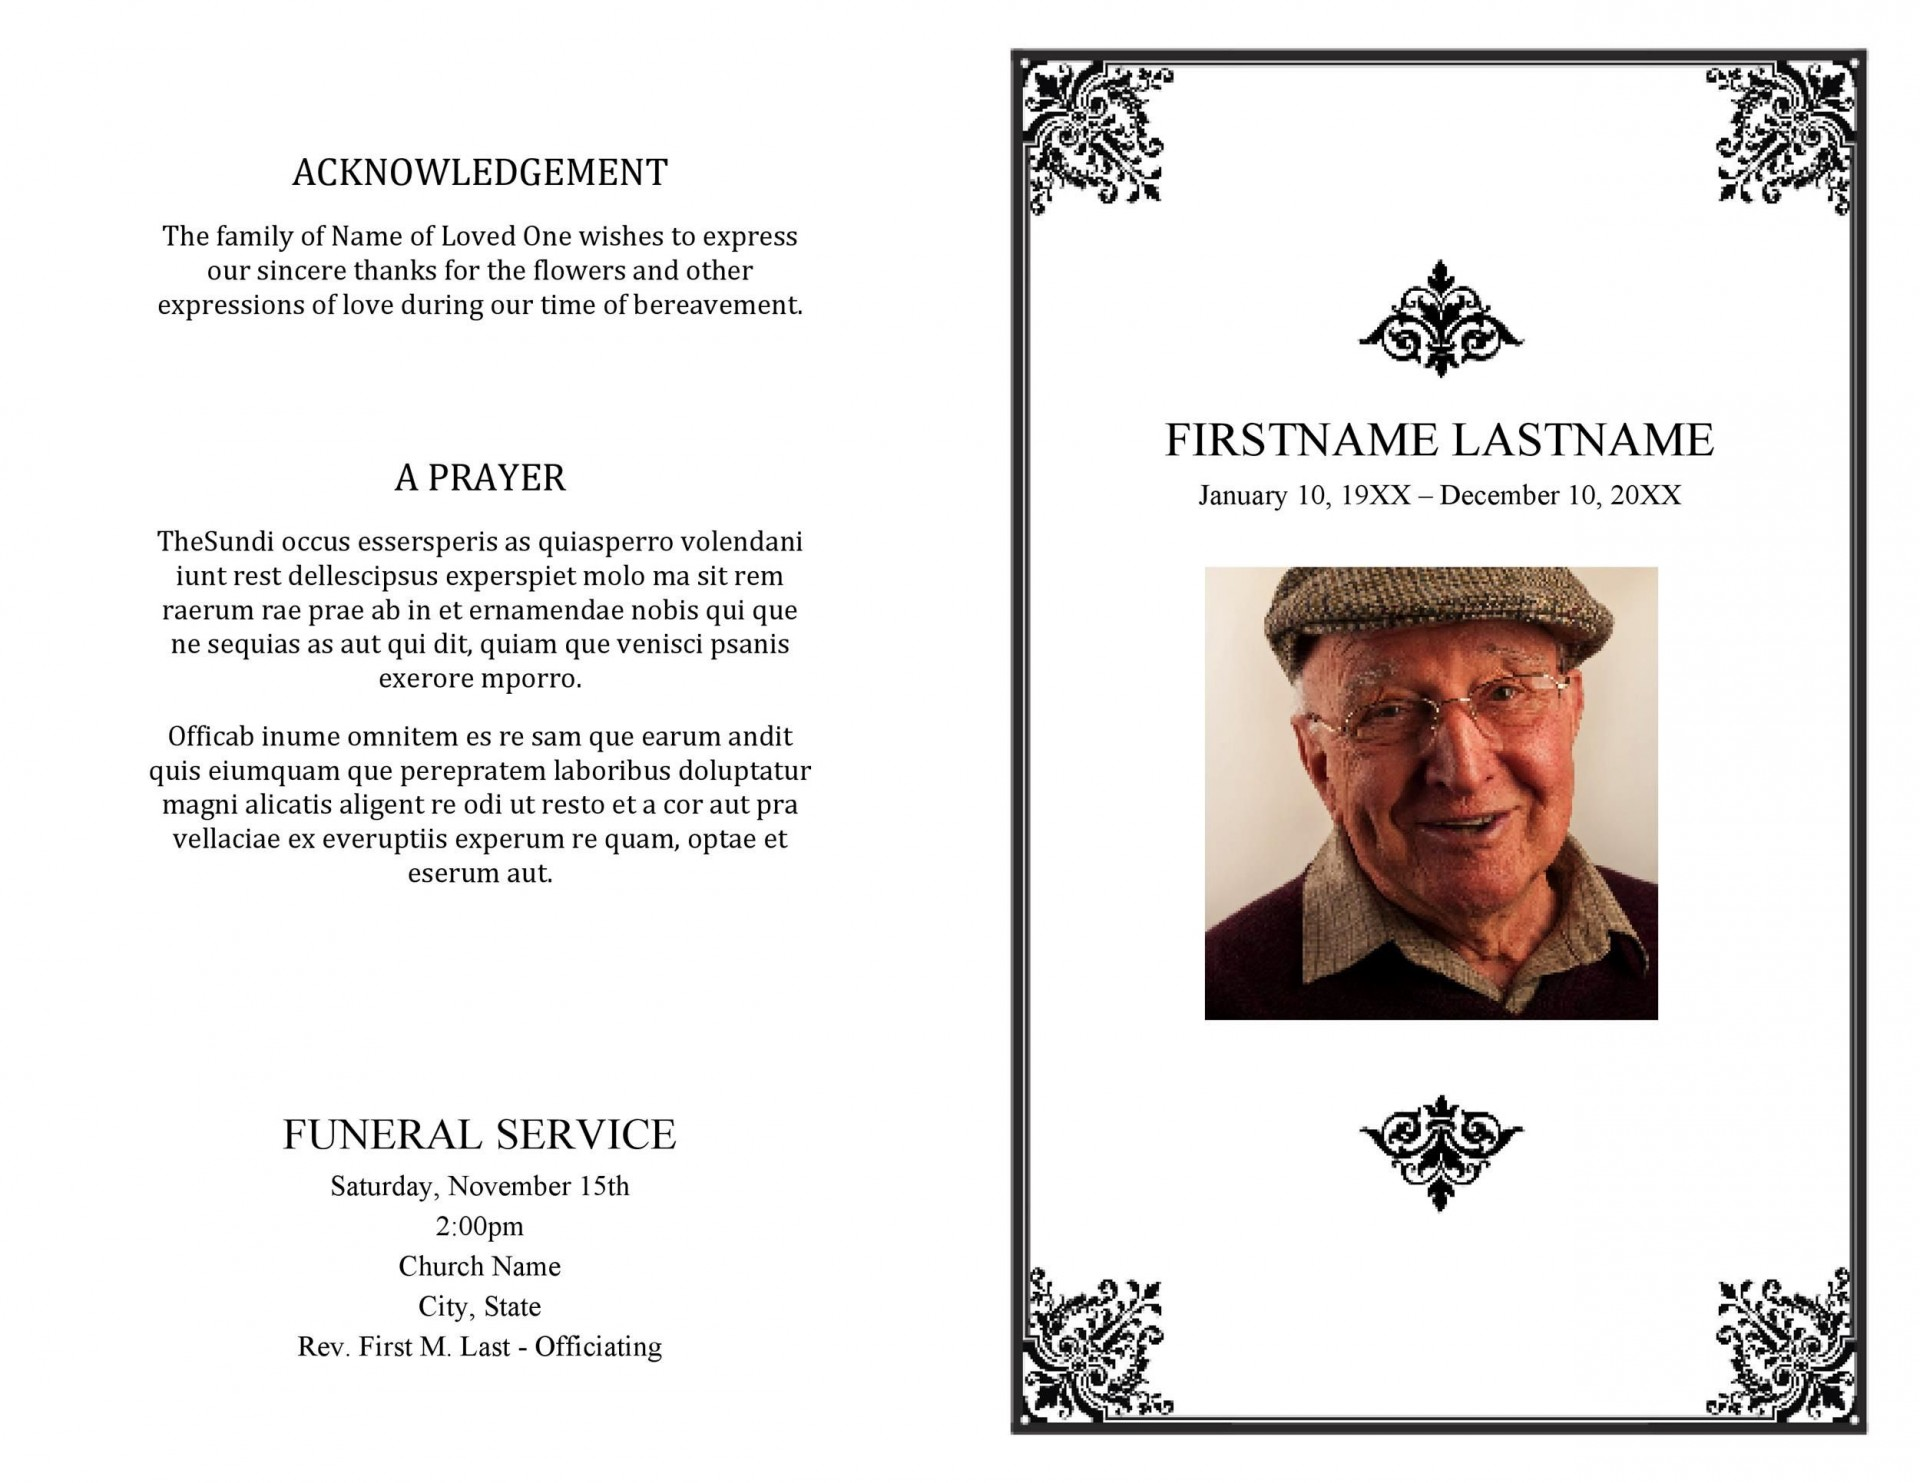 005 Best Funeral Program Template Free High Definition  Printable Design1920